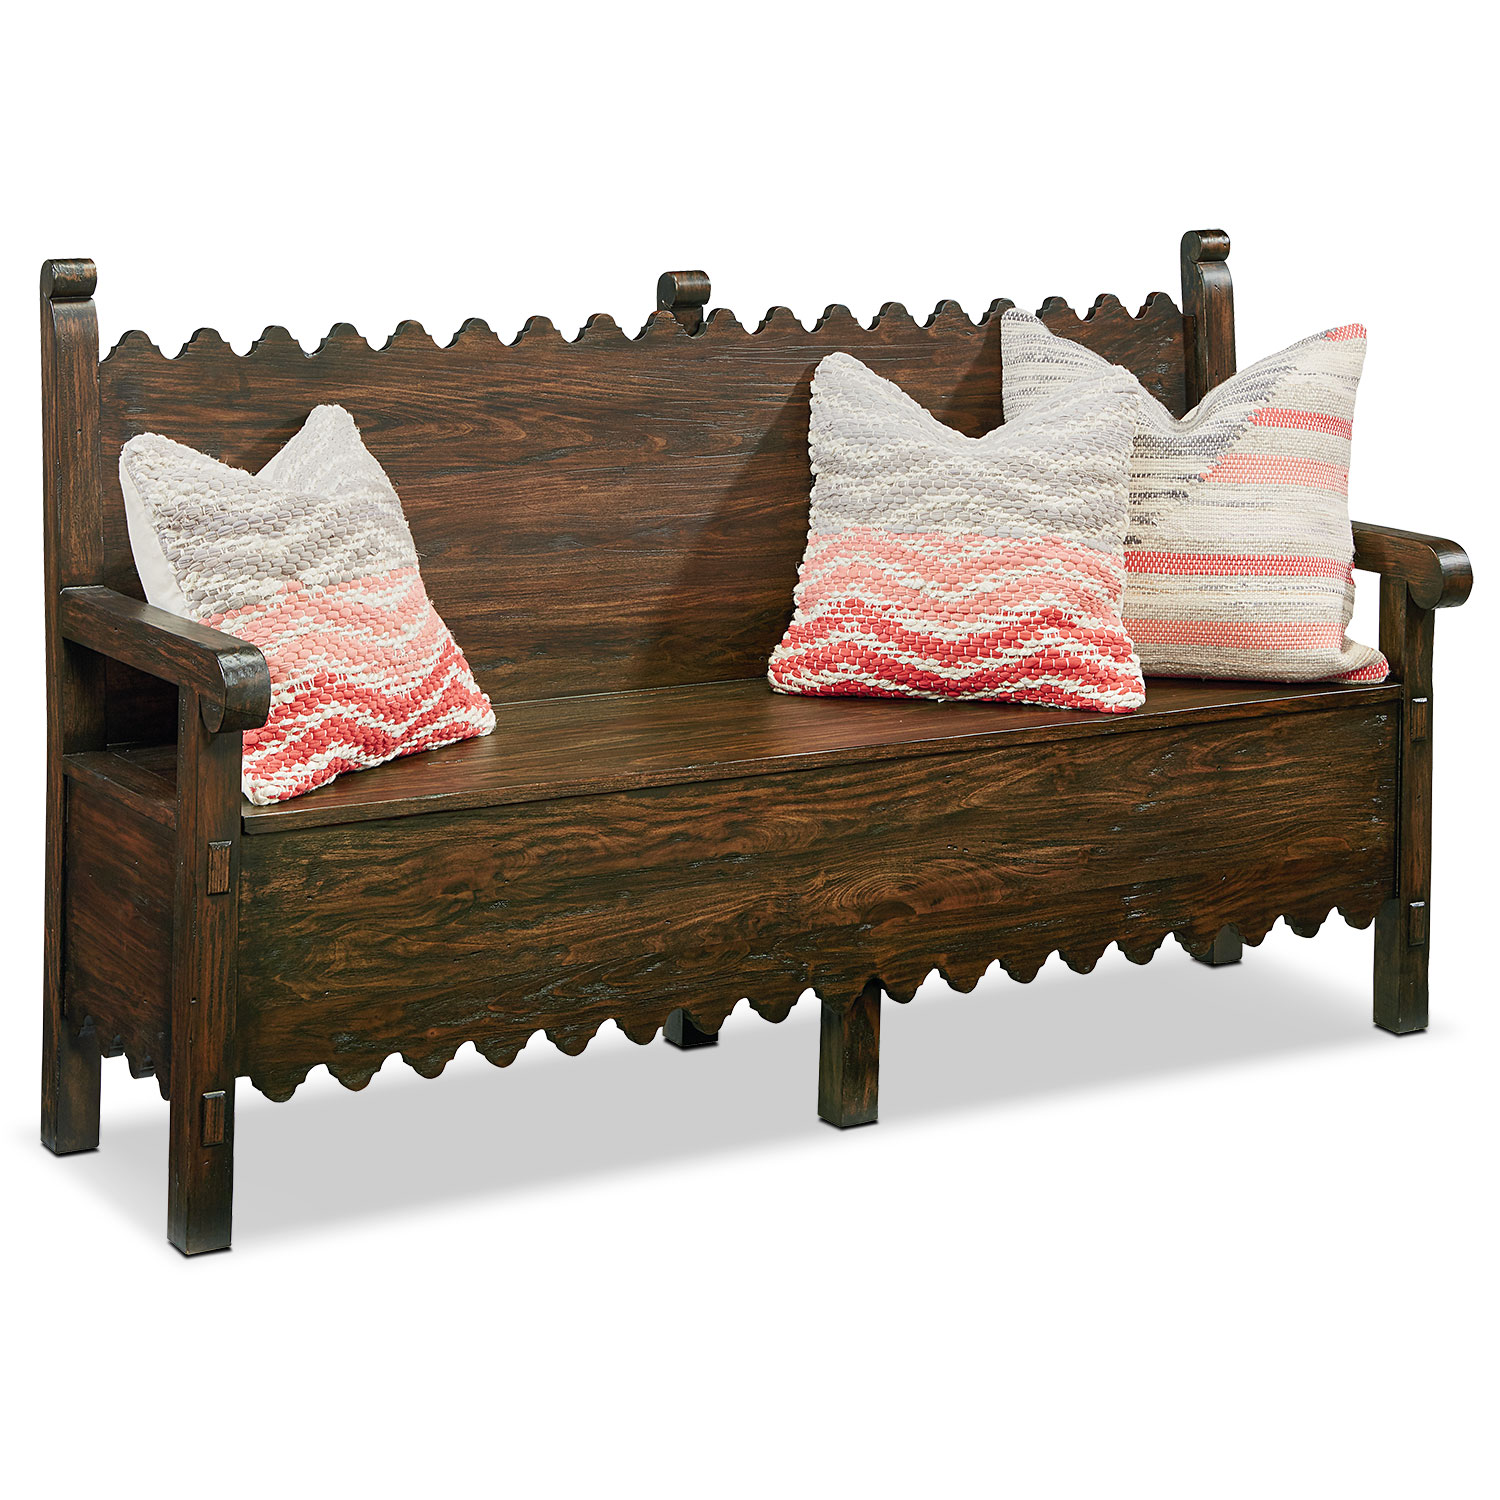 value city joanna gaines furniture 28 images 1000 images about